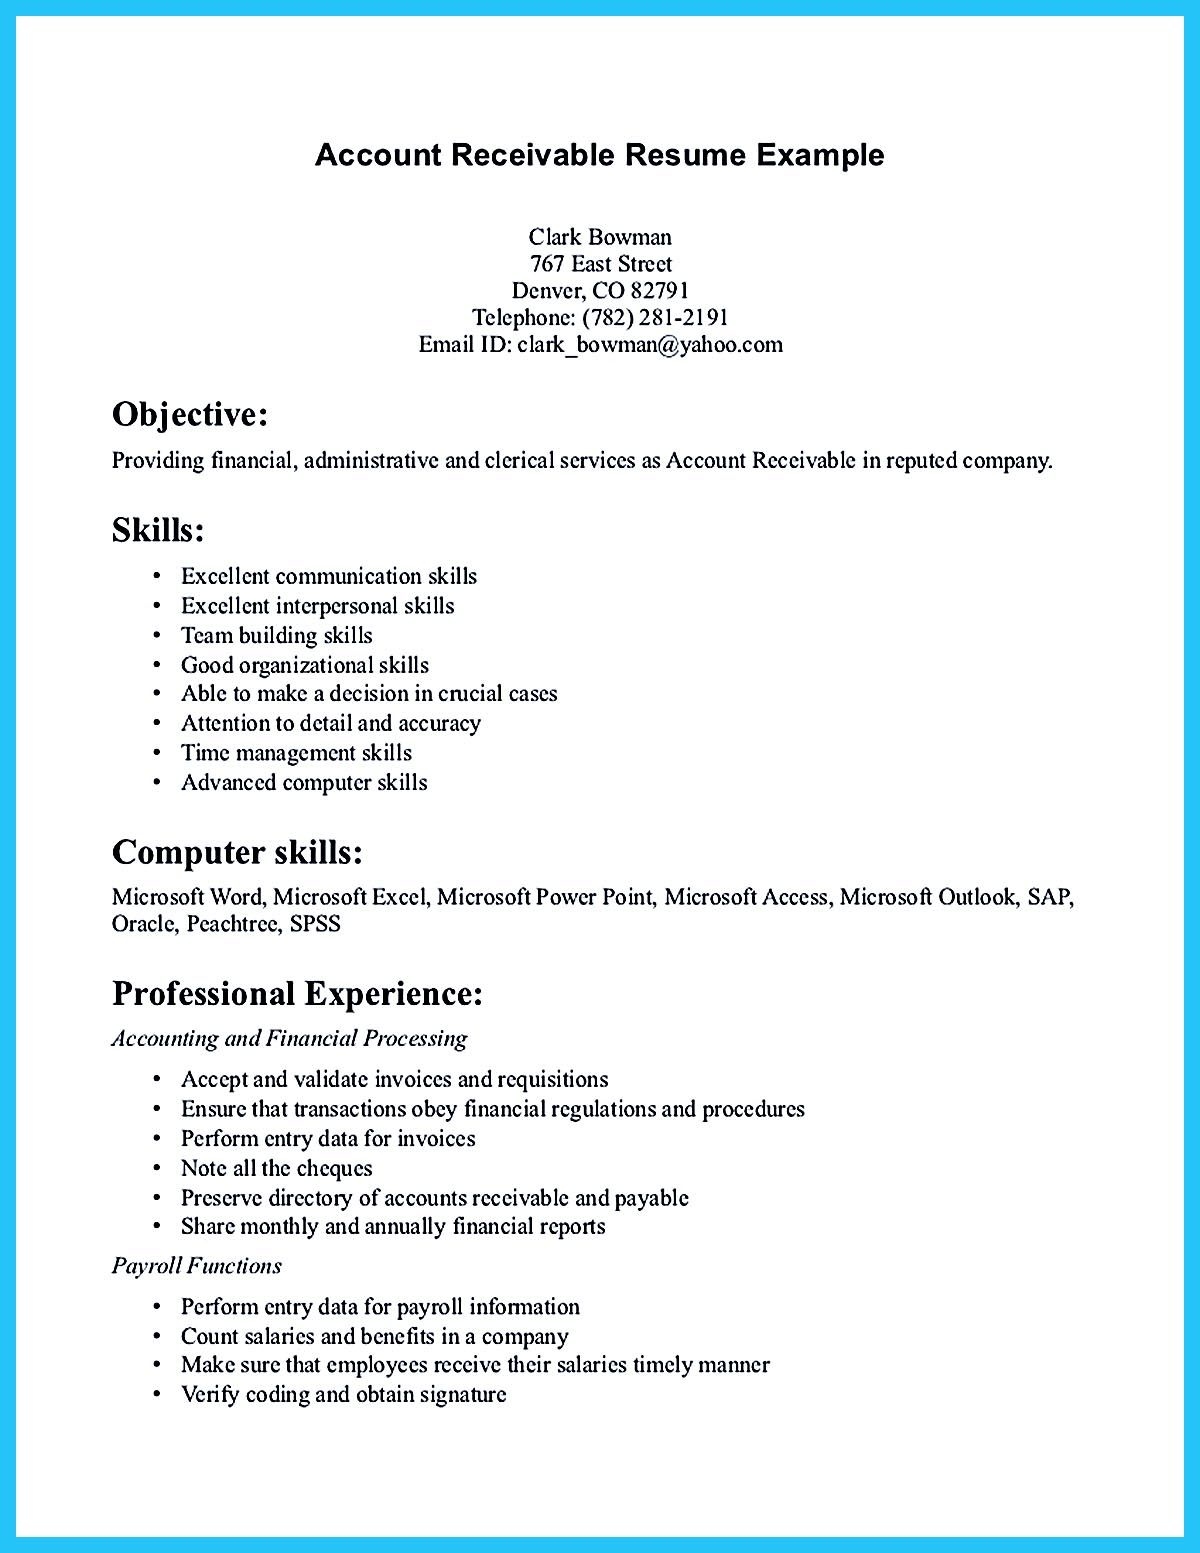 Job Skills Resume Accounts Receivable Resume Presents Both Skills And Also The